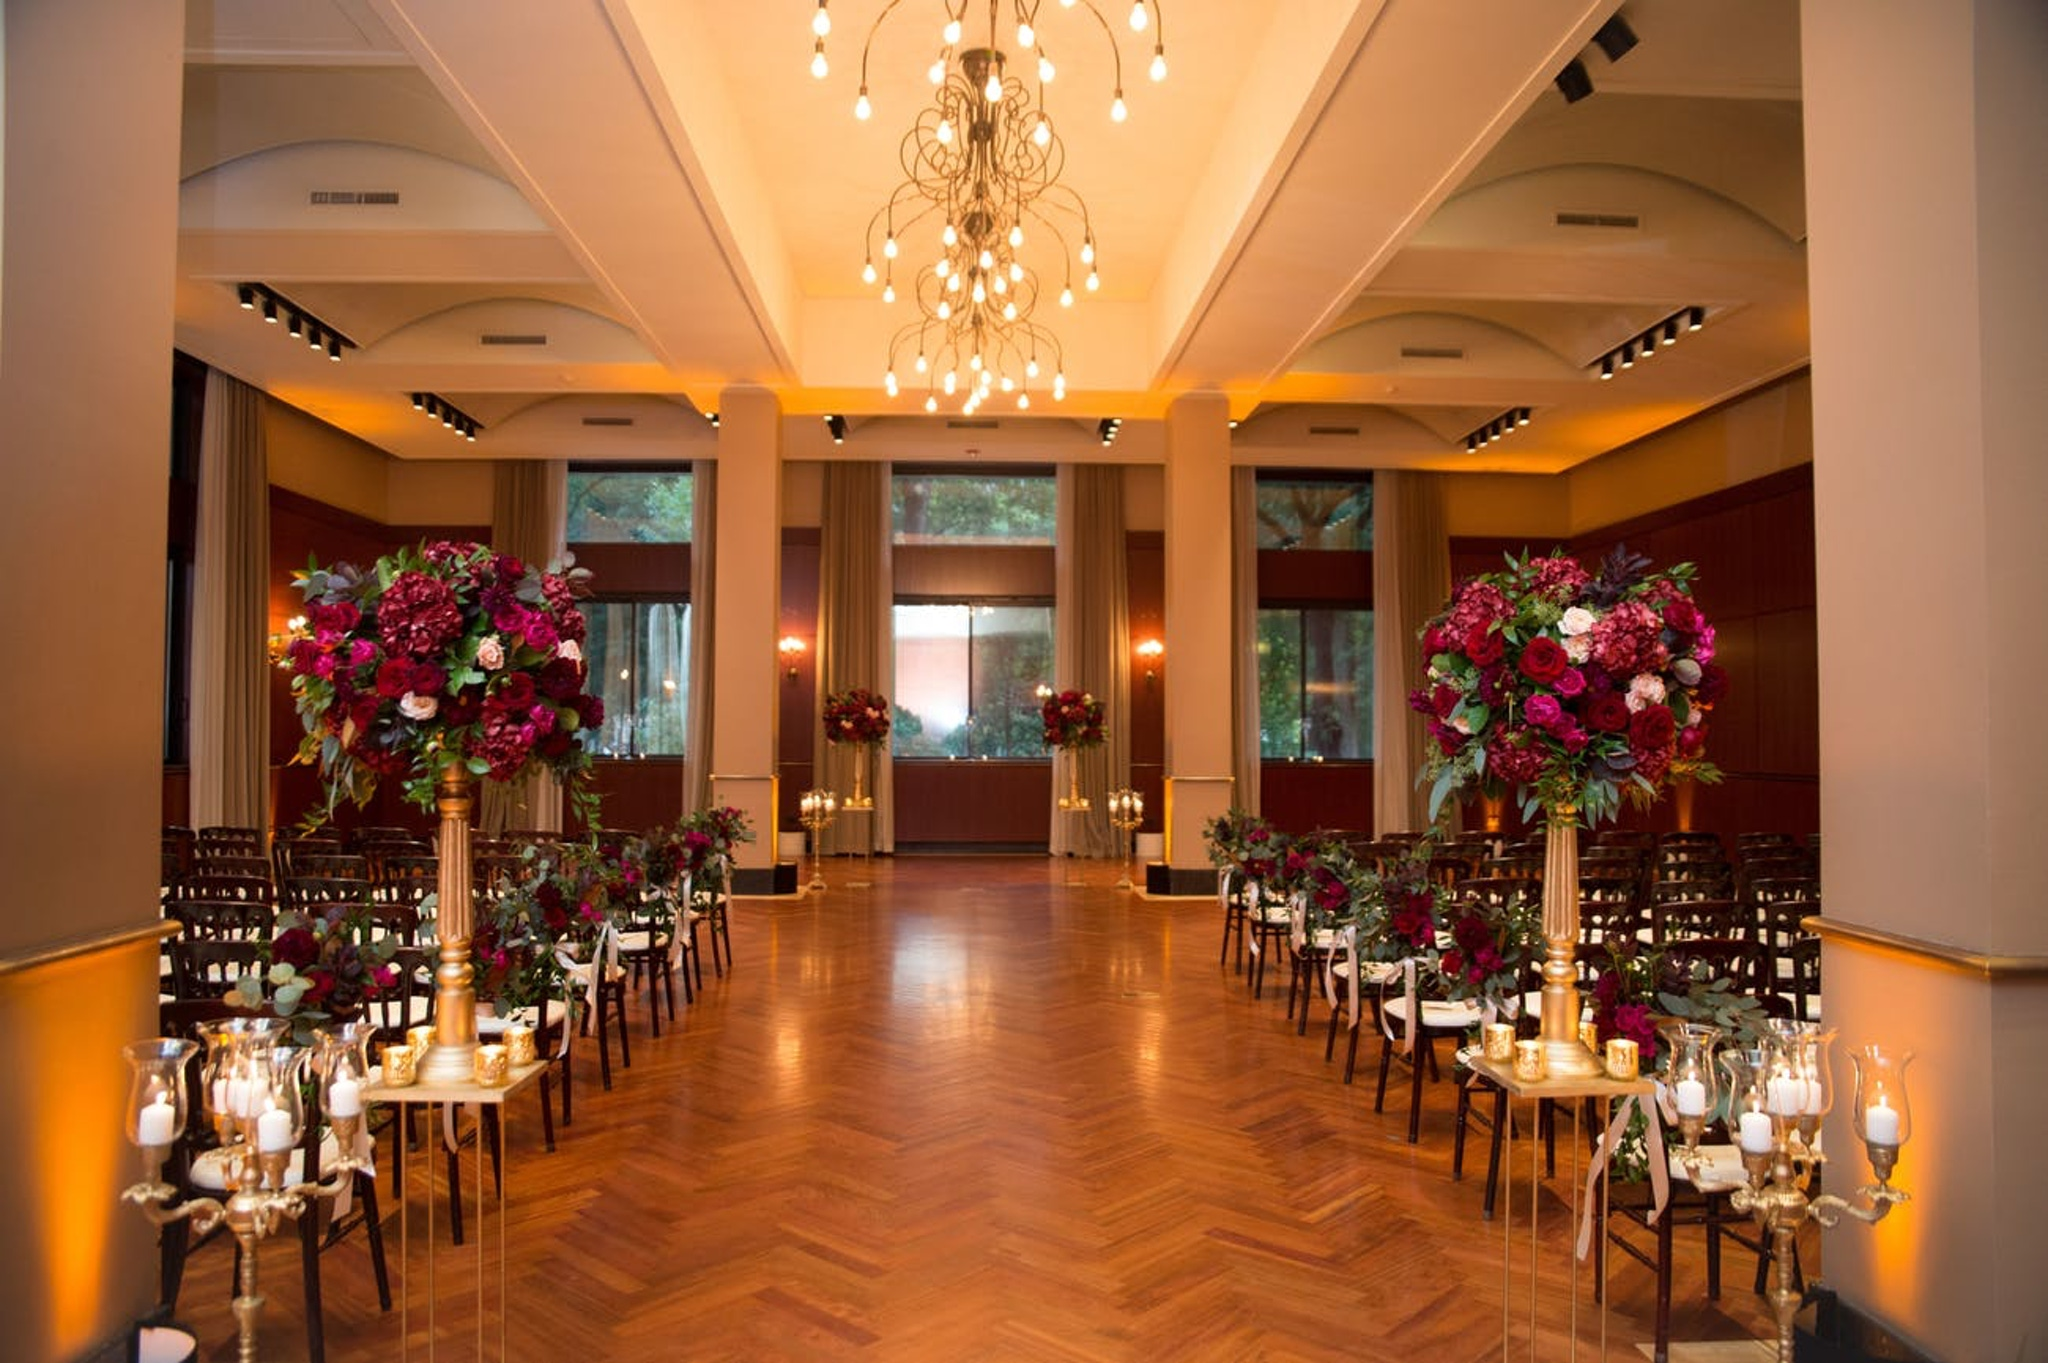 warm toned wedding ceremony aisle with wood floor and red flowers